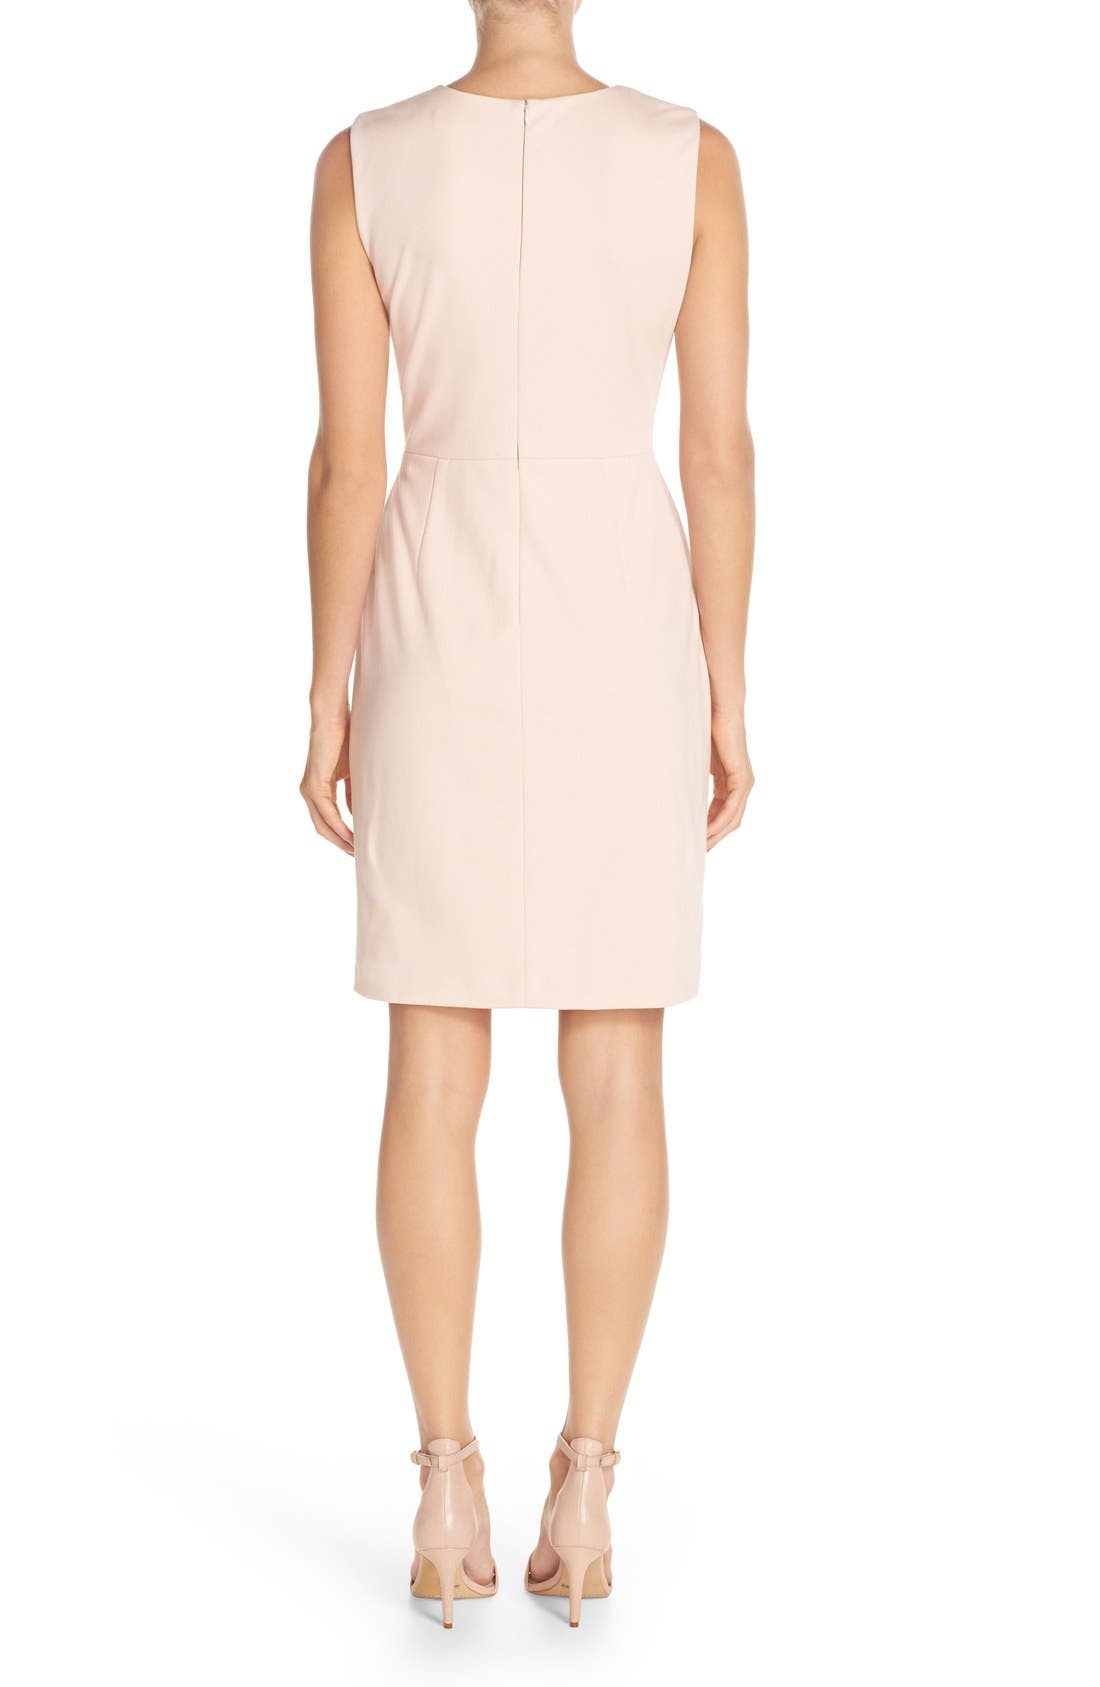 IVANKA TRUMP, Sleeveless Sheath Dress, Alternate thumbnail 3, color, 650